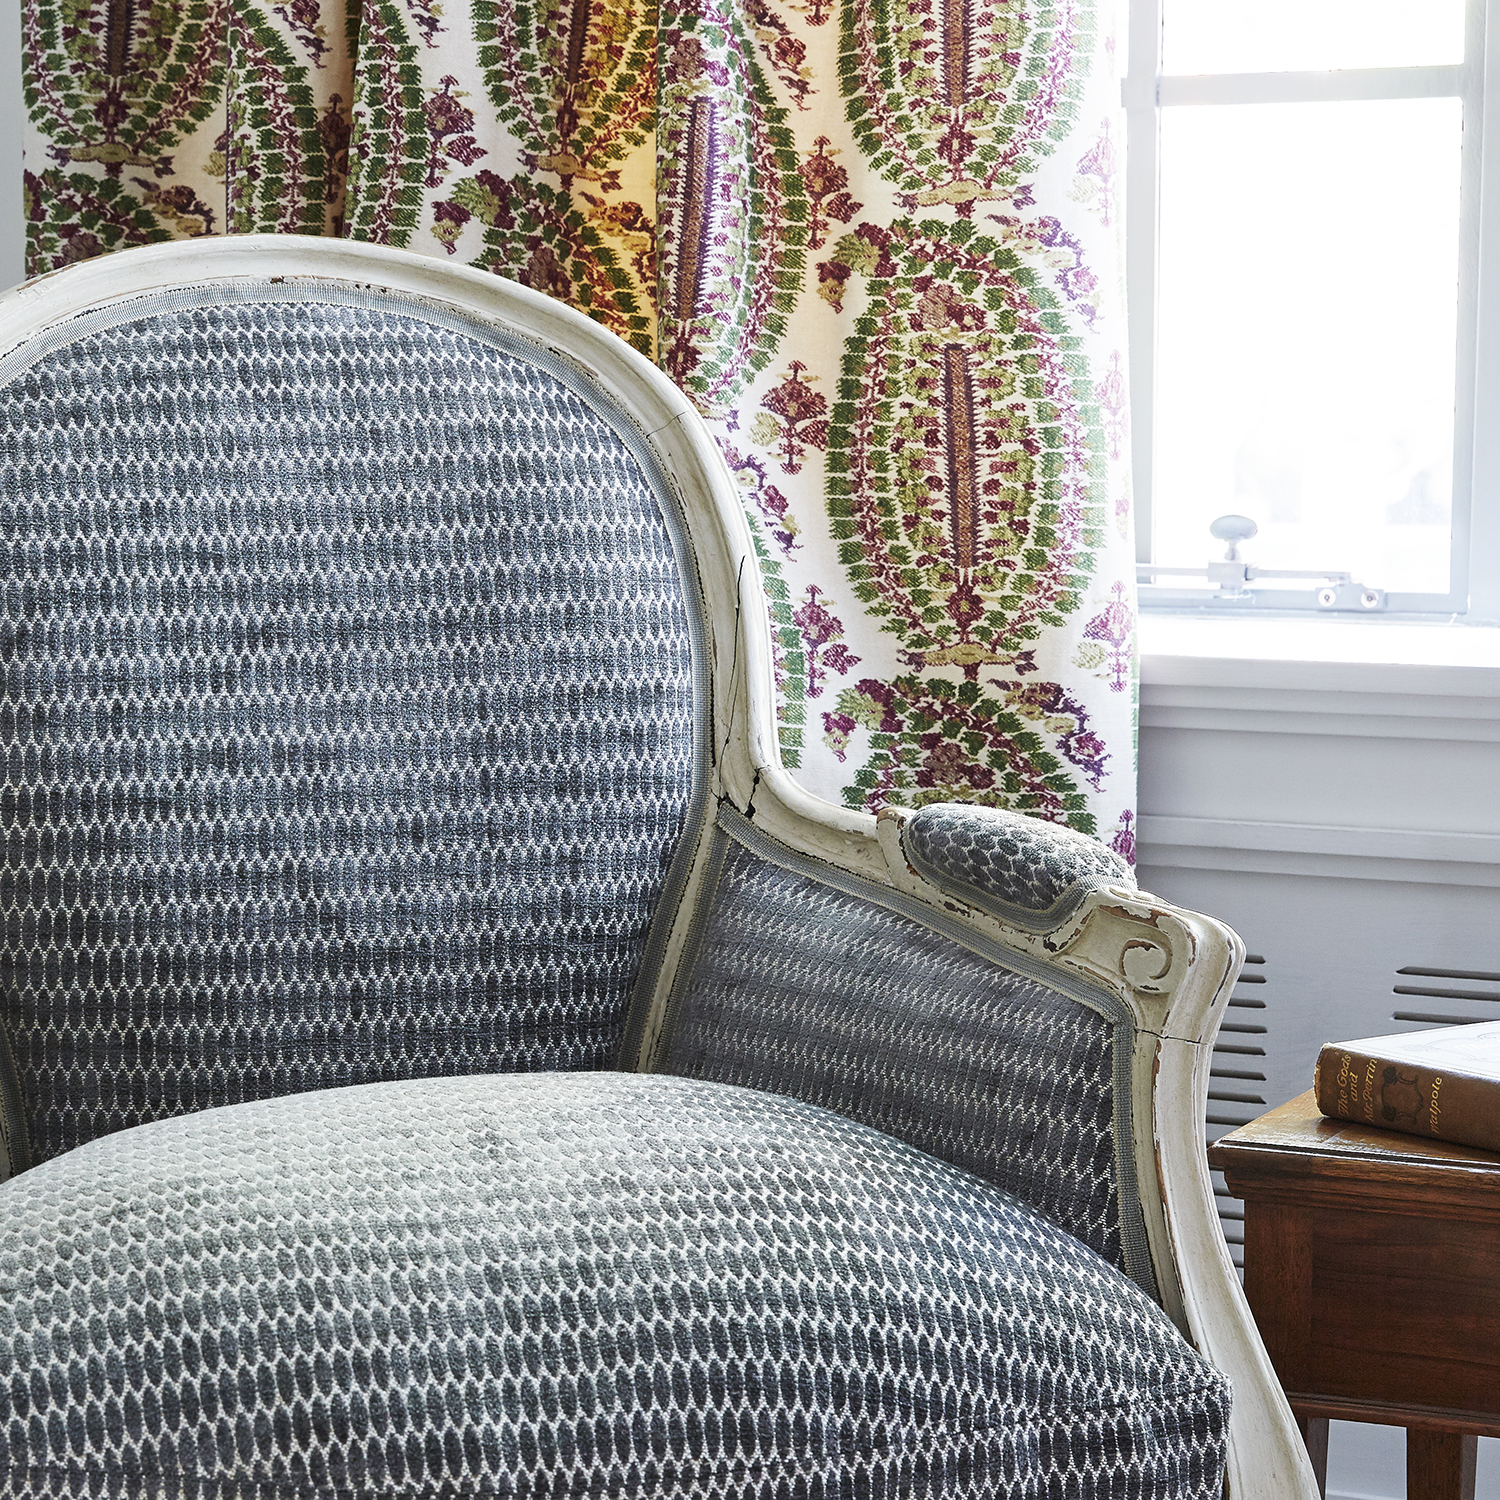 15.Blithfield - The Winthrop Collection - Compton - Green Chair and Anoushka Plum Green B .jpg